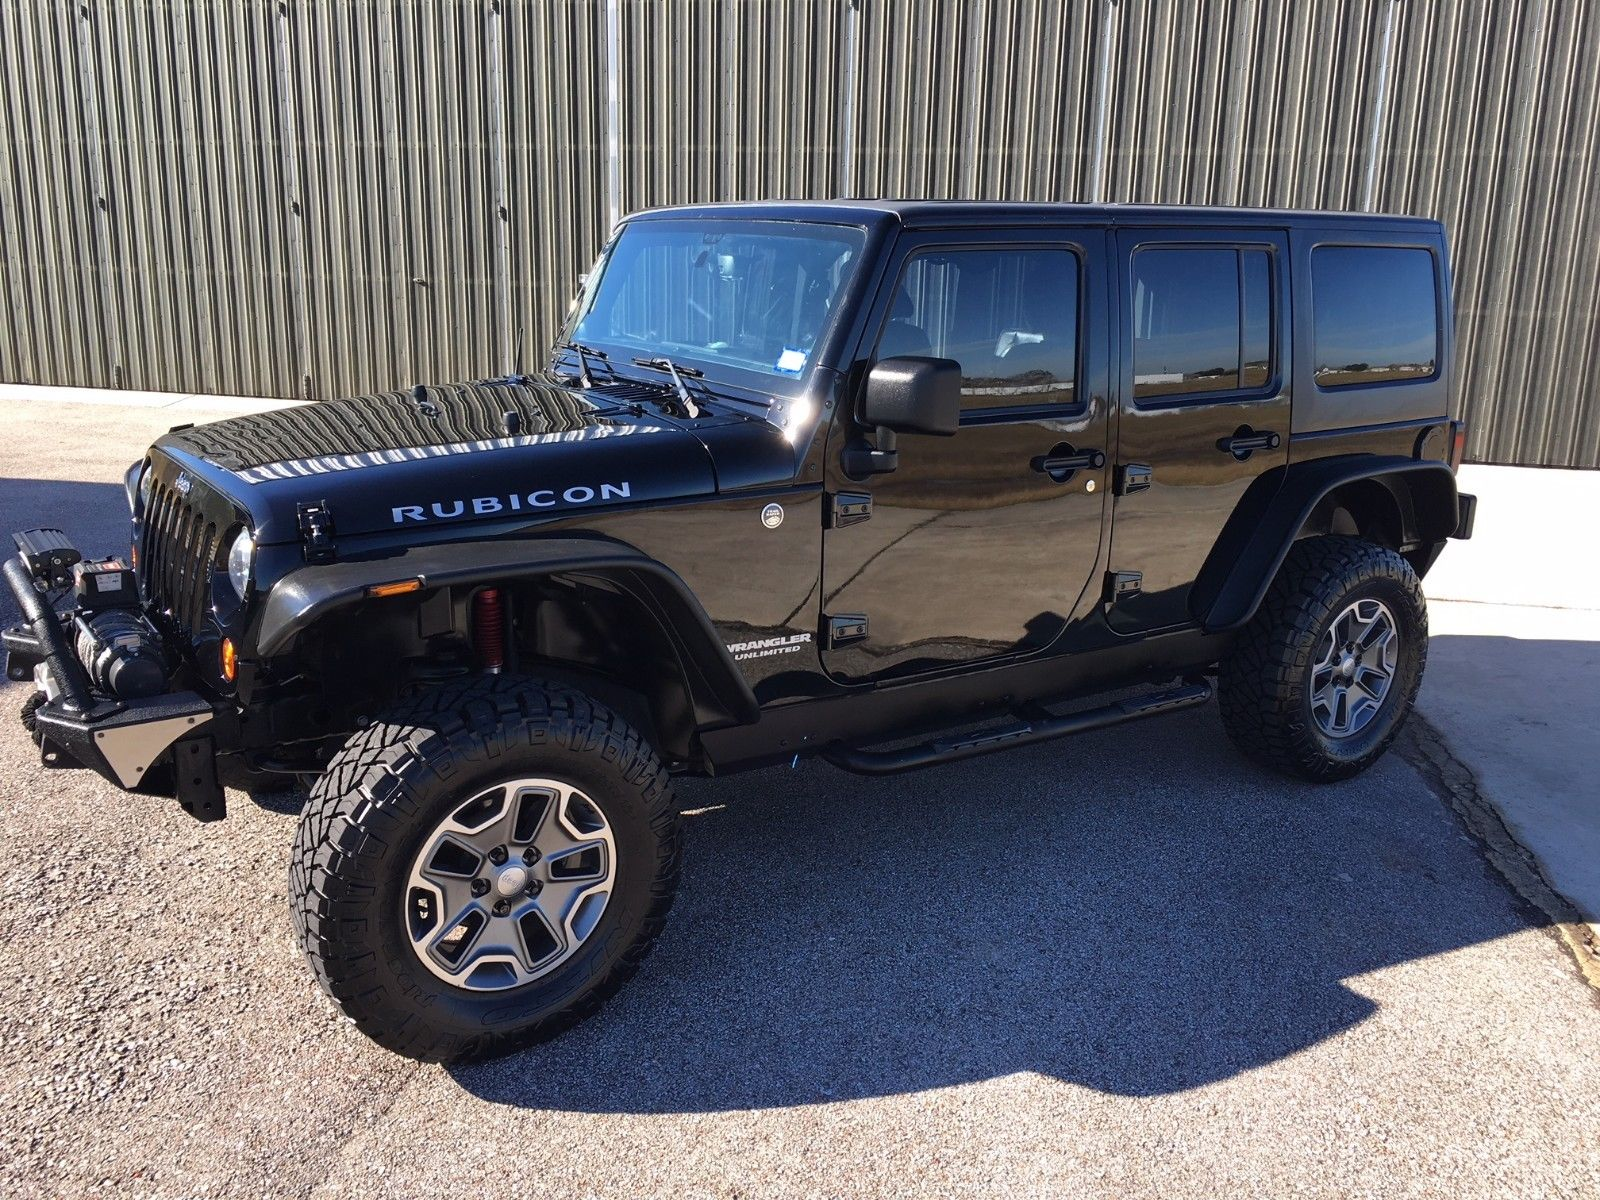 Great 2013 Jeep Wrangler Unlimited Rubicon 2013 Jeep Wrangler Unlimited  Rubicon A+ Condition 2018 2019